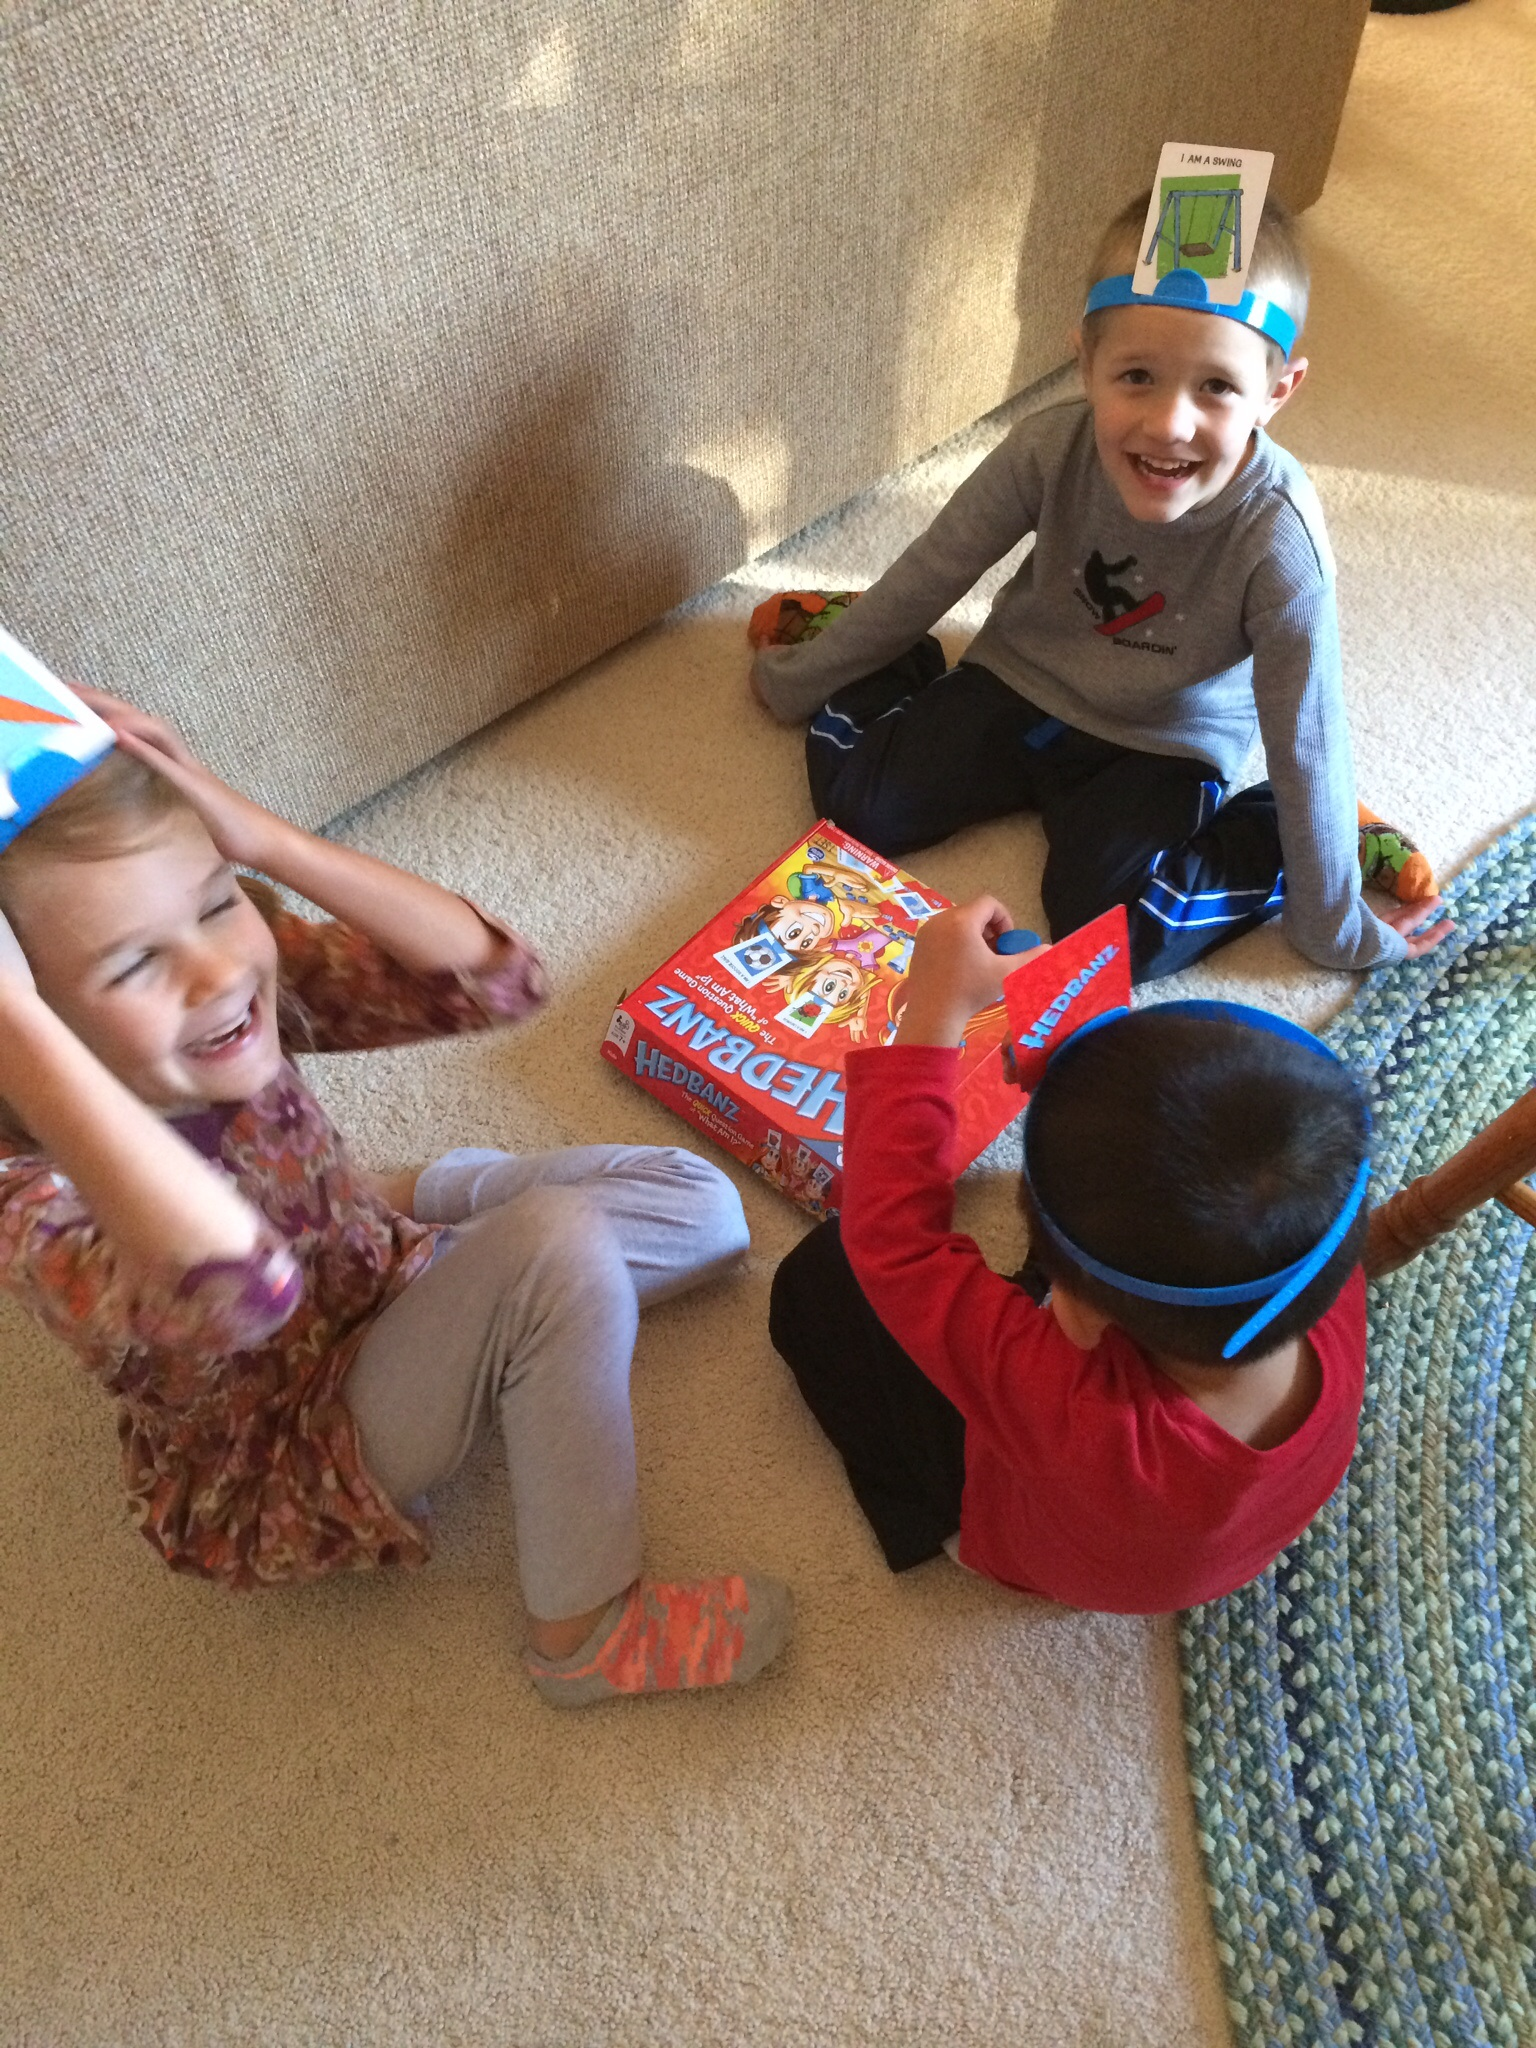 HEADBANDS! Perfect game to play with a kid learning English:)